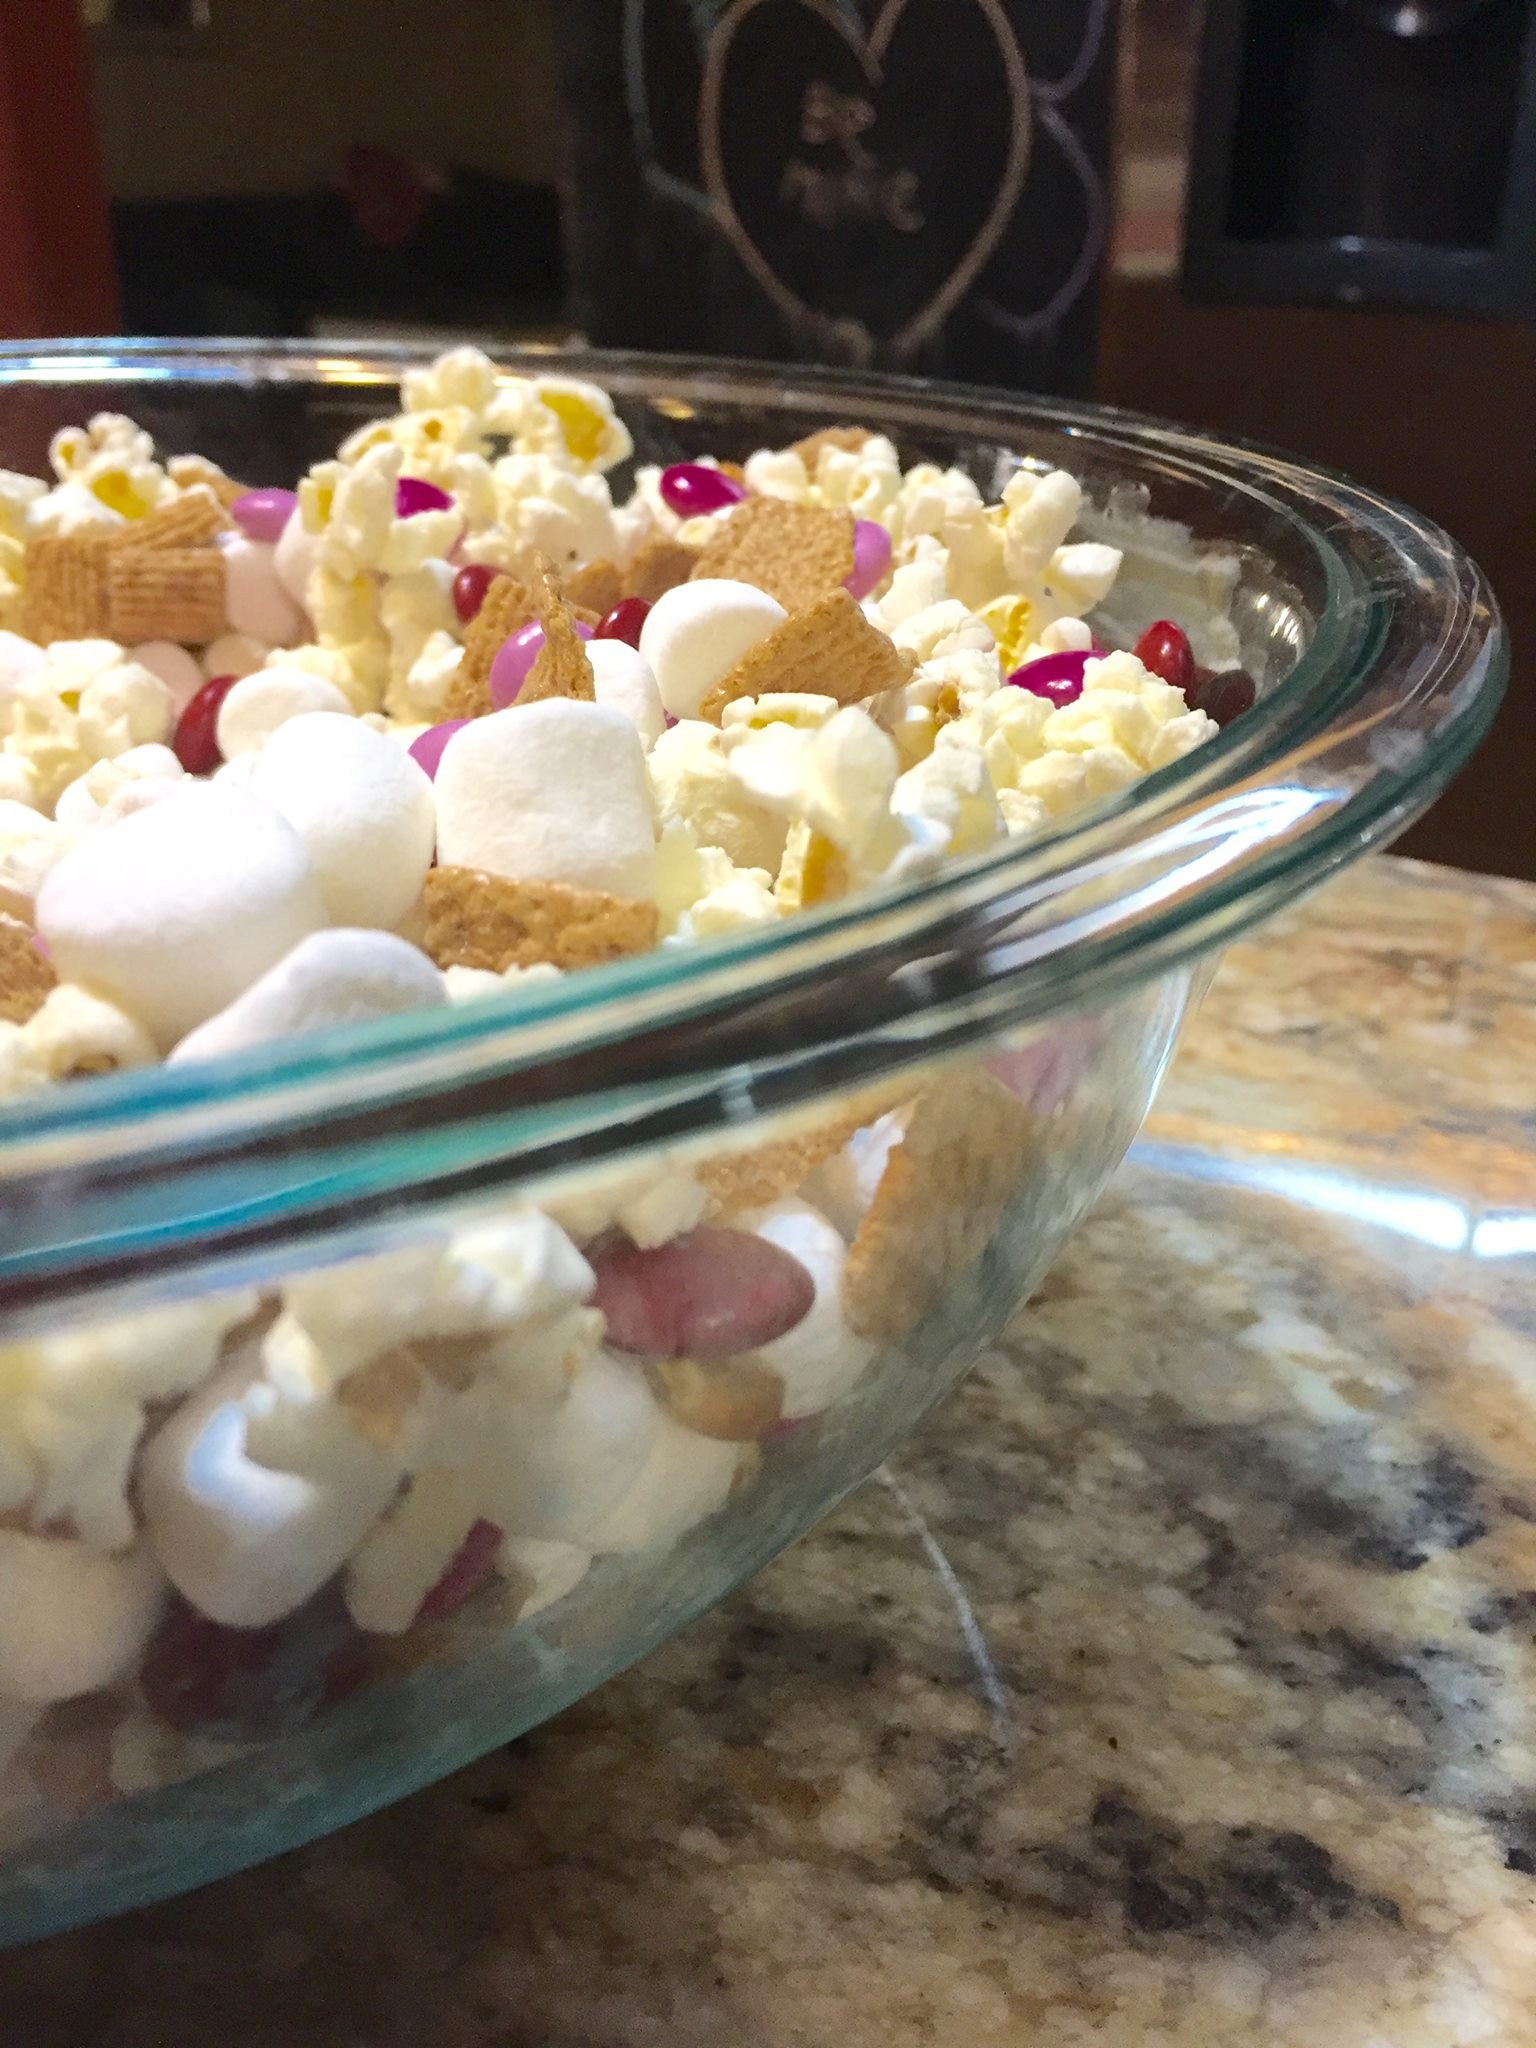 Valentines Day popcorn for our special movie night. Ingredients include golden grahams, mini marshmallows, and valentine m&ms.